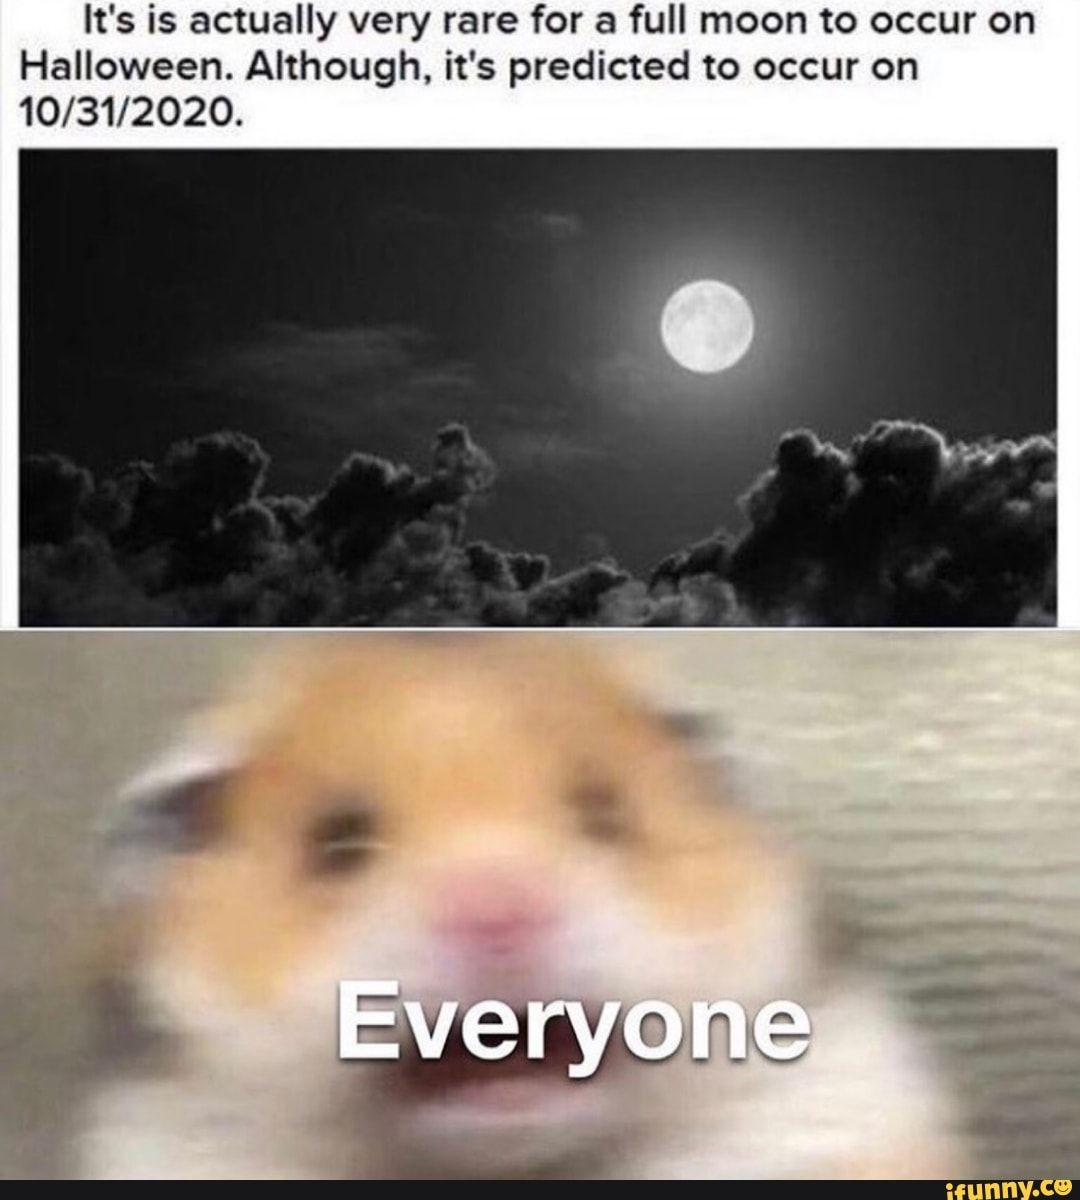 It S Is Actually Very Rare For A Full Moon To Occur On Halloween Although It S Predicted To Occur On 10 31 2020 Ifunny Funny Relatable Memes Stupid Funny Memes Funny Memes